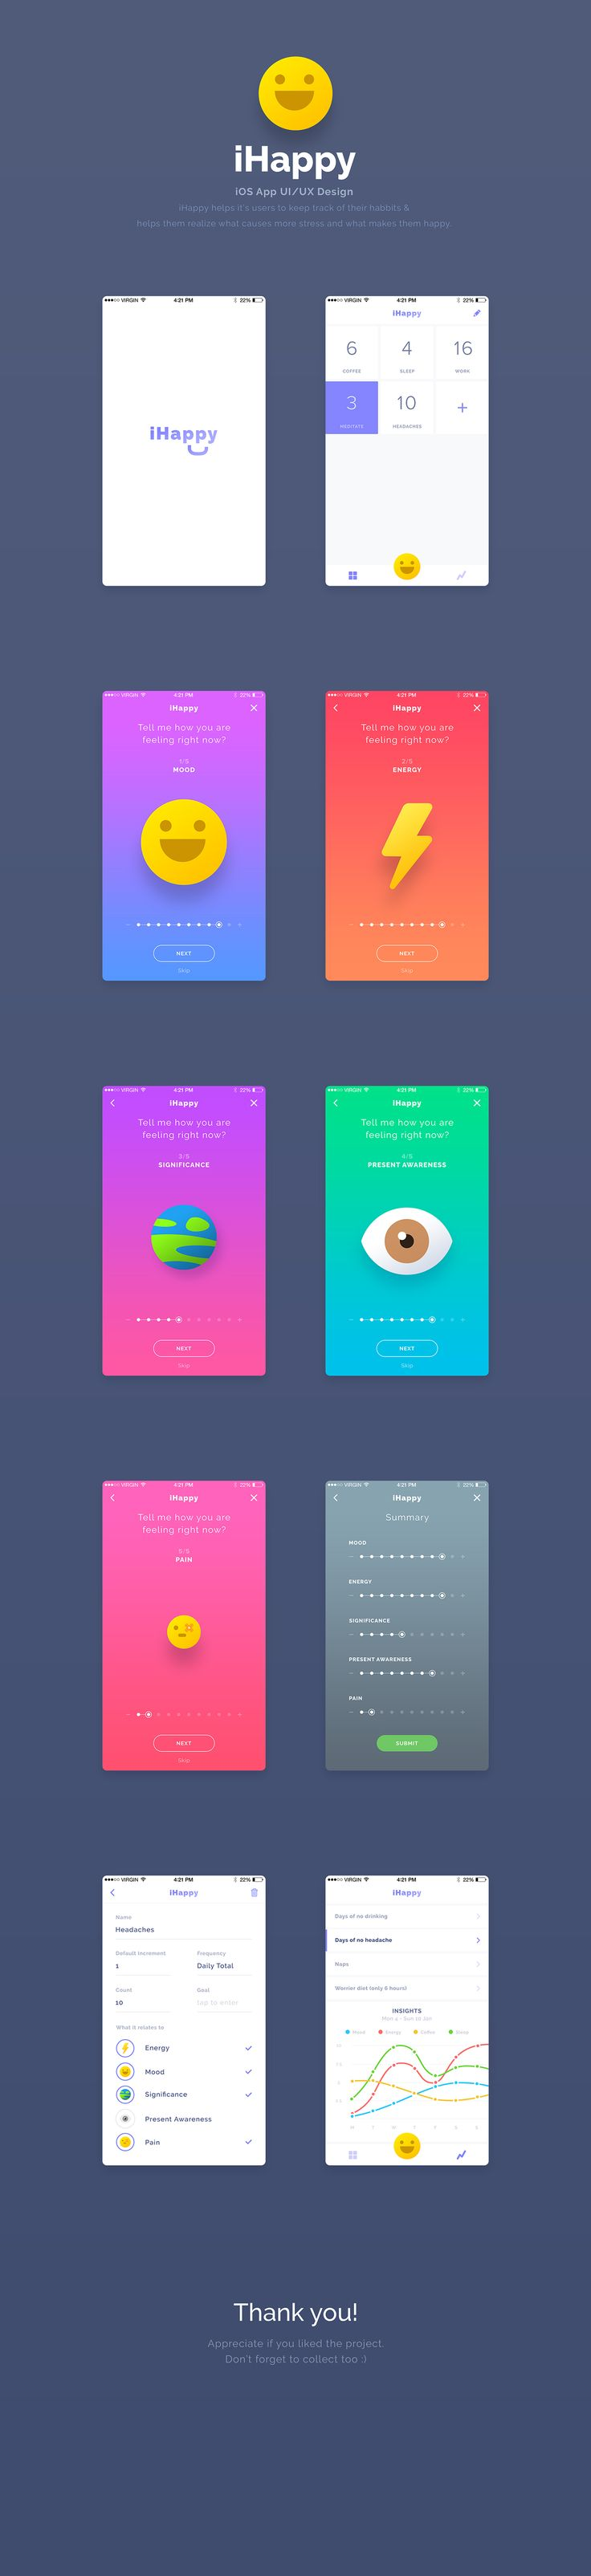 iHappy | iOS App UI/UX Design on Behance